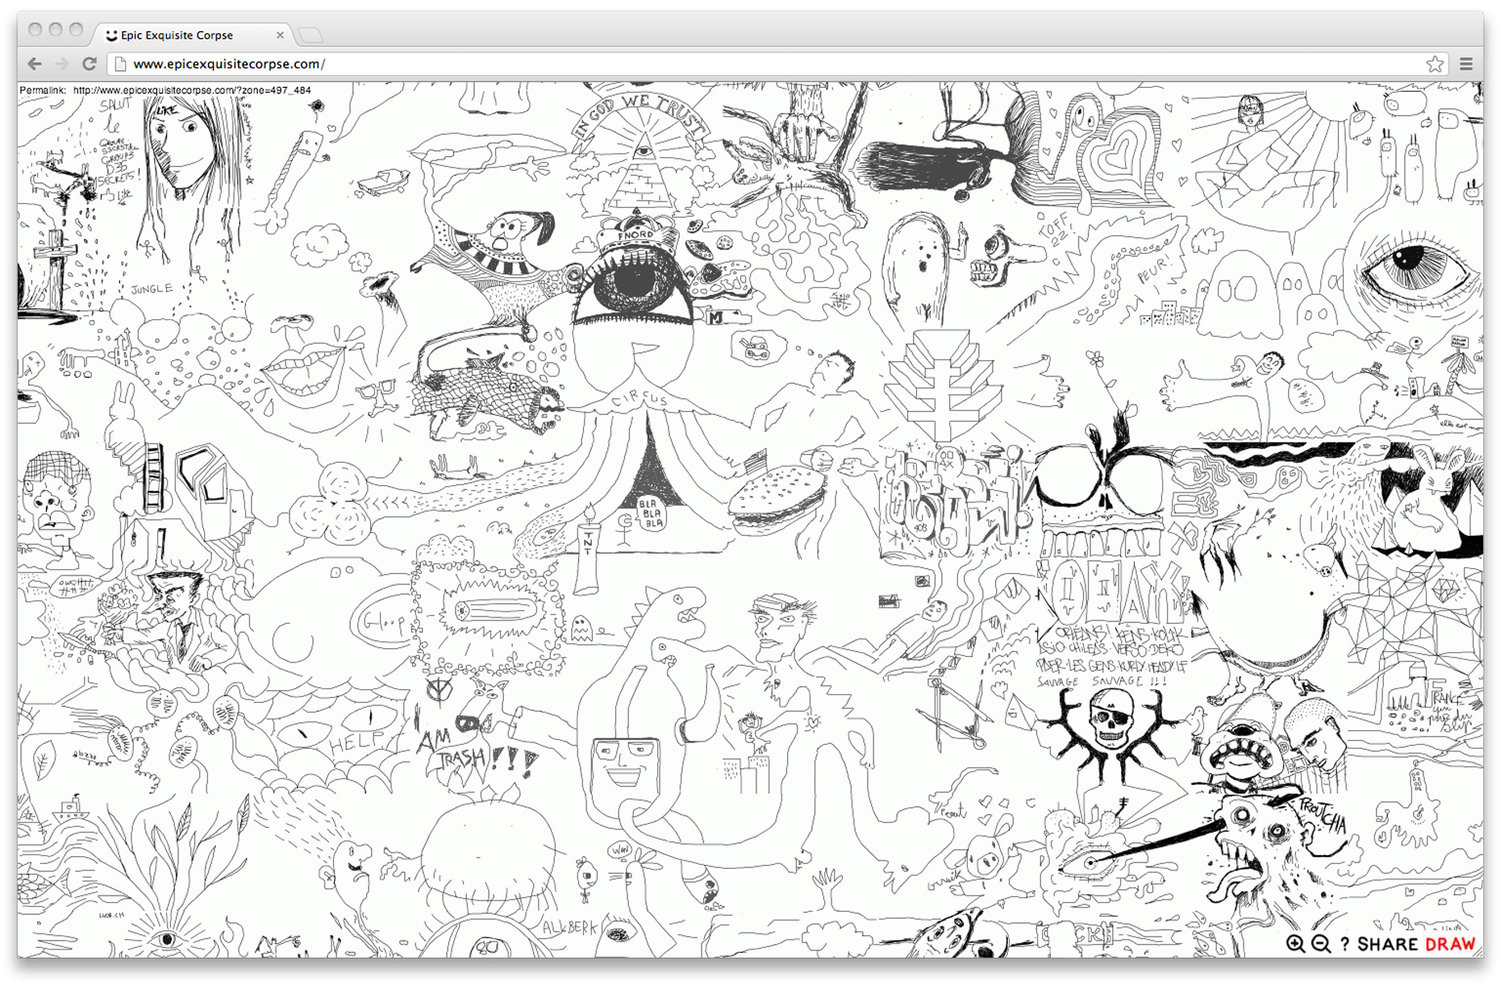 I designed and developed most of the website as a personal project to gain digital experience. It hosted more than 70 000 drawings from 172 countries and is one of the biggest collaborative artwork ever made.